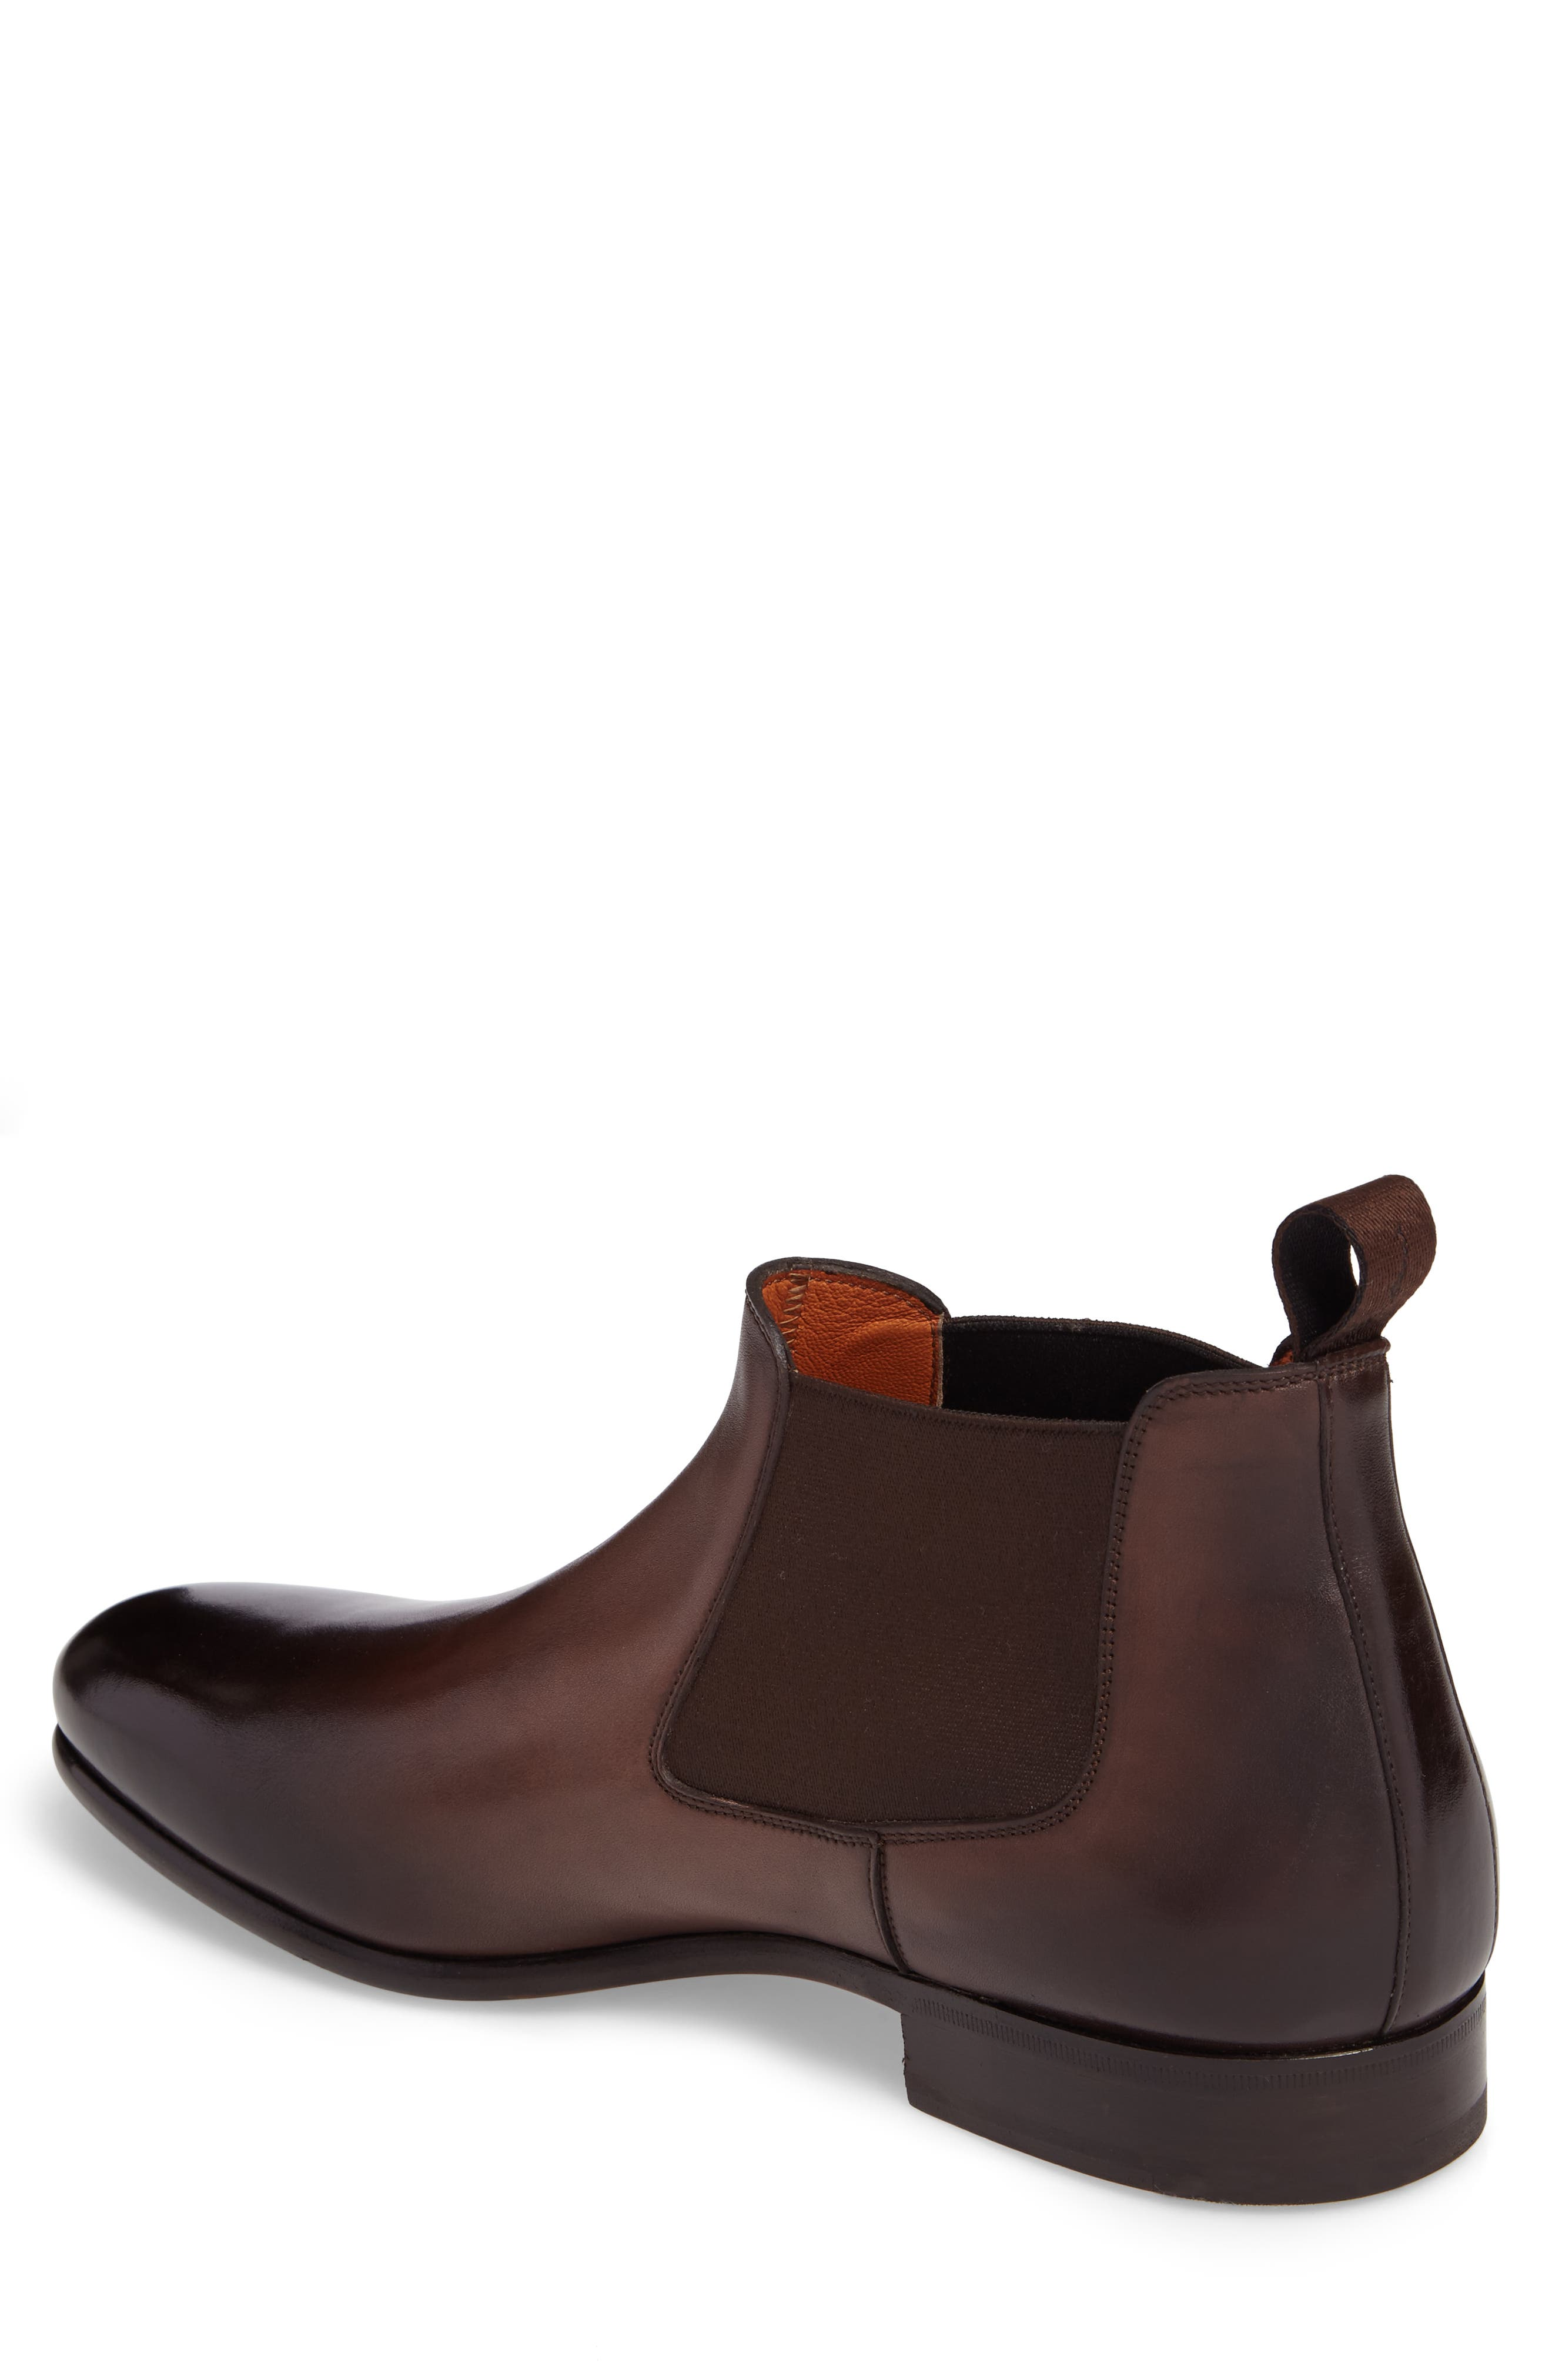 Gunther Chelsea Boot,                             Alternate thumbnail 4, color,